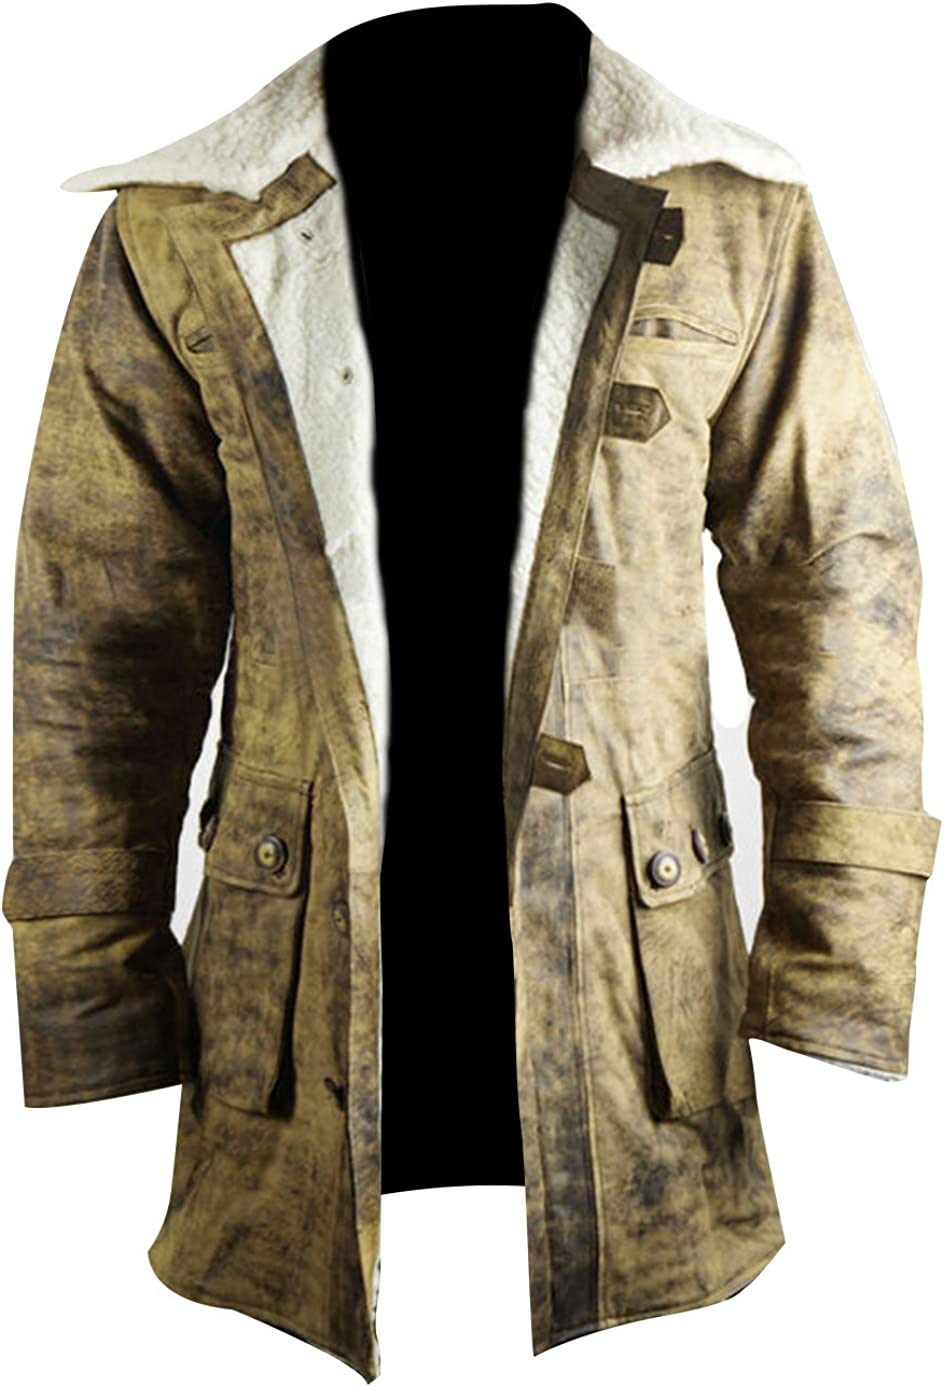 CHICAGO-FASHIONS Mens Bane Crocodile Buffing Coat - Knight Distressed Brown Hardy Fur Leather Rises Coat